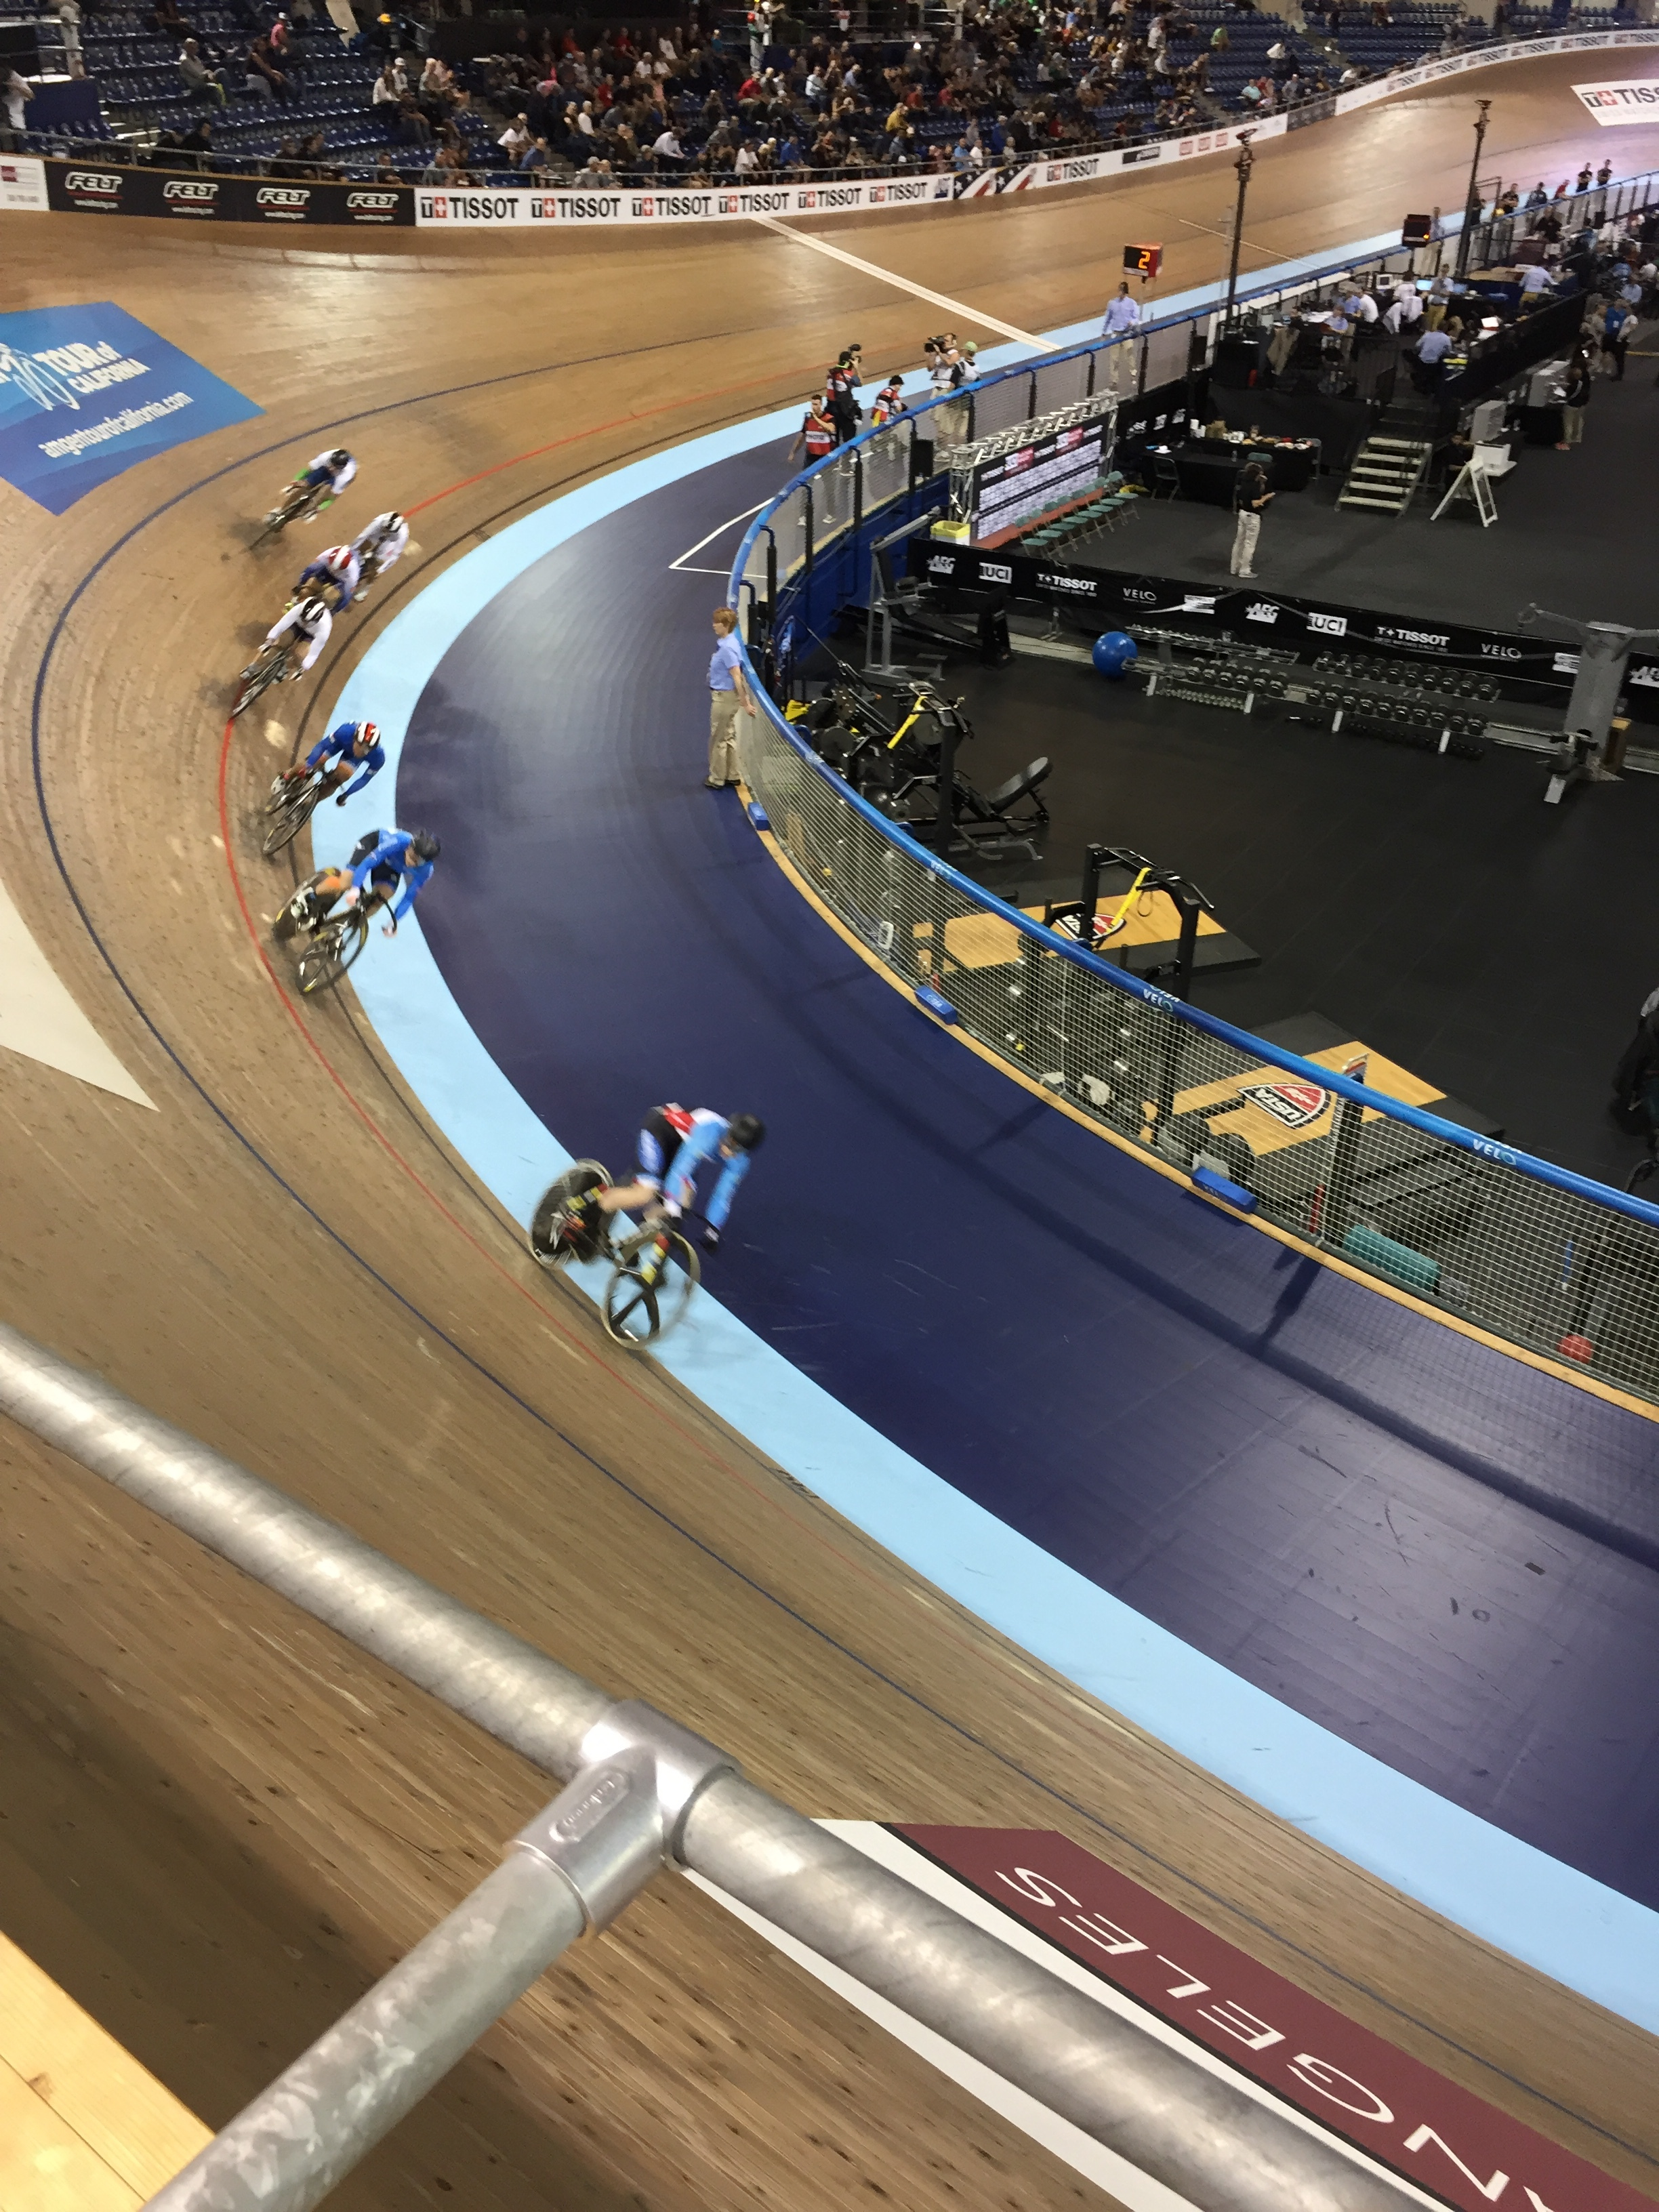 . . . and more great World Cup racing.